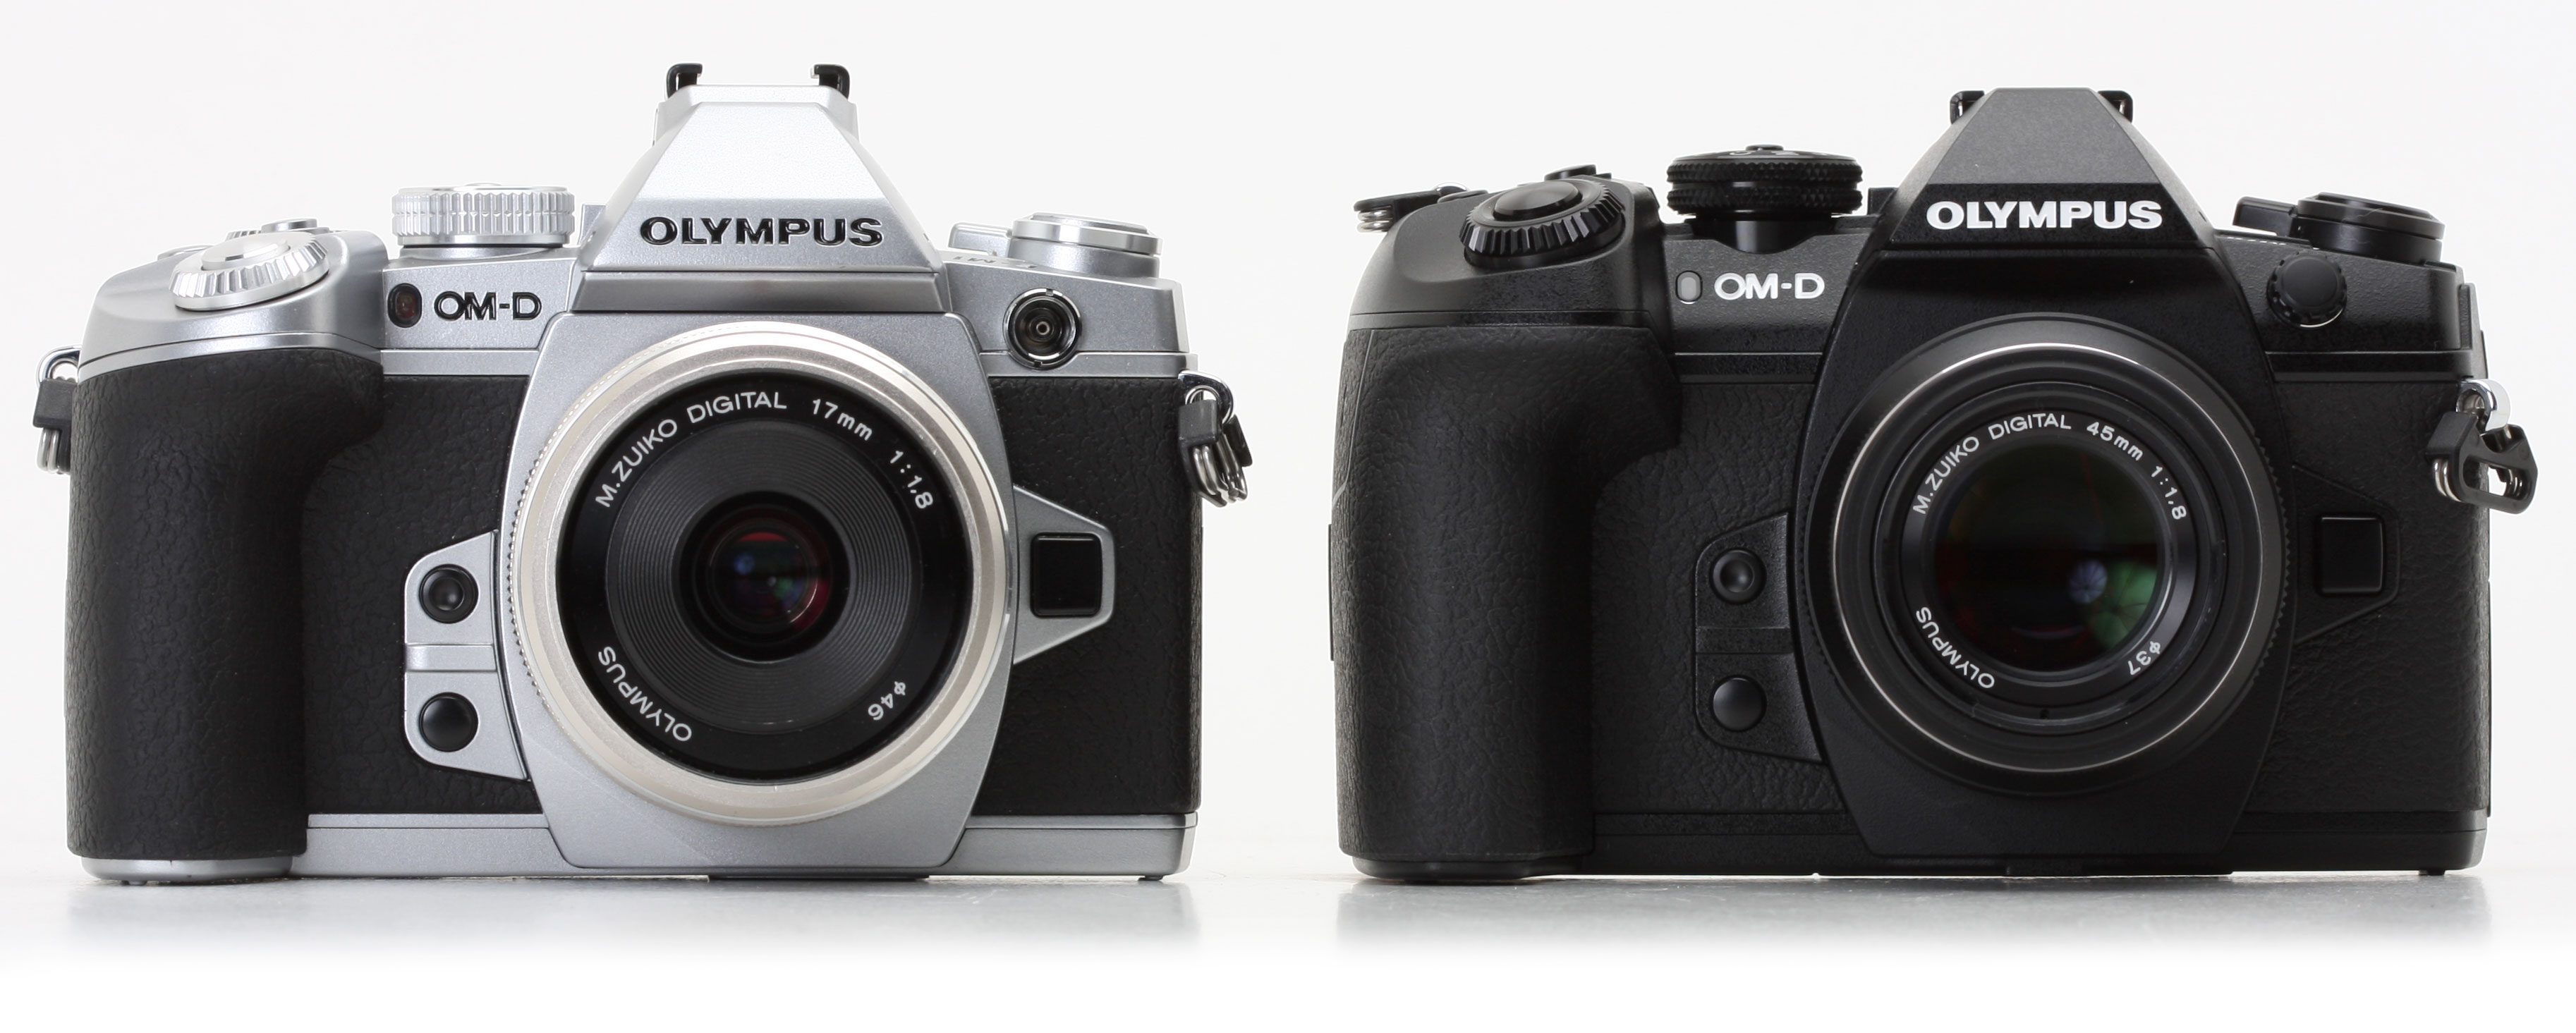 f2275b87cb95 The original E-M1 (left) and E-M1 Mark II (right) side-by-side. The bodies  and control layout are remarkably similar - but note the increased height of  the ...